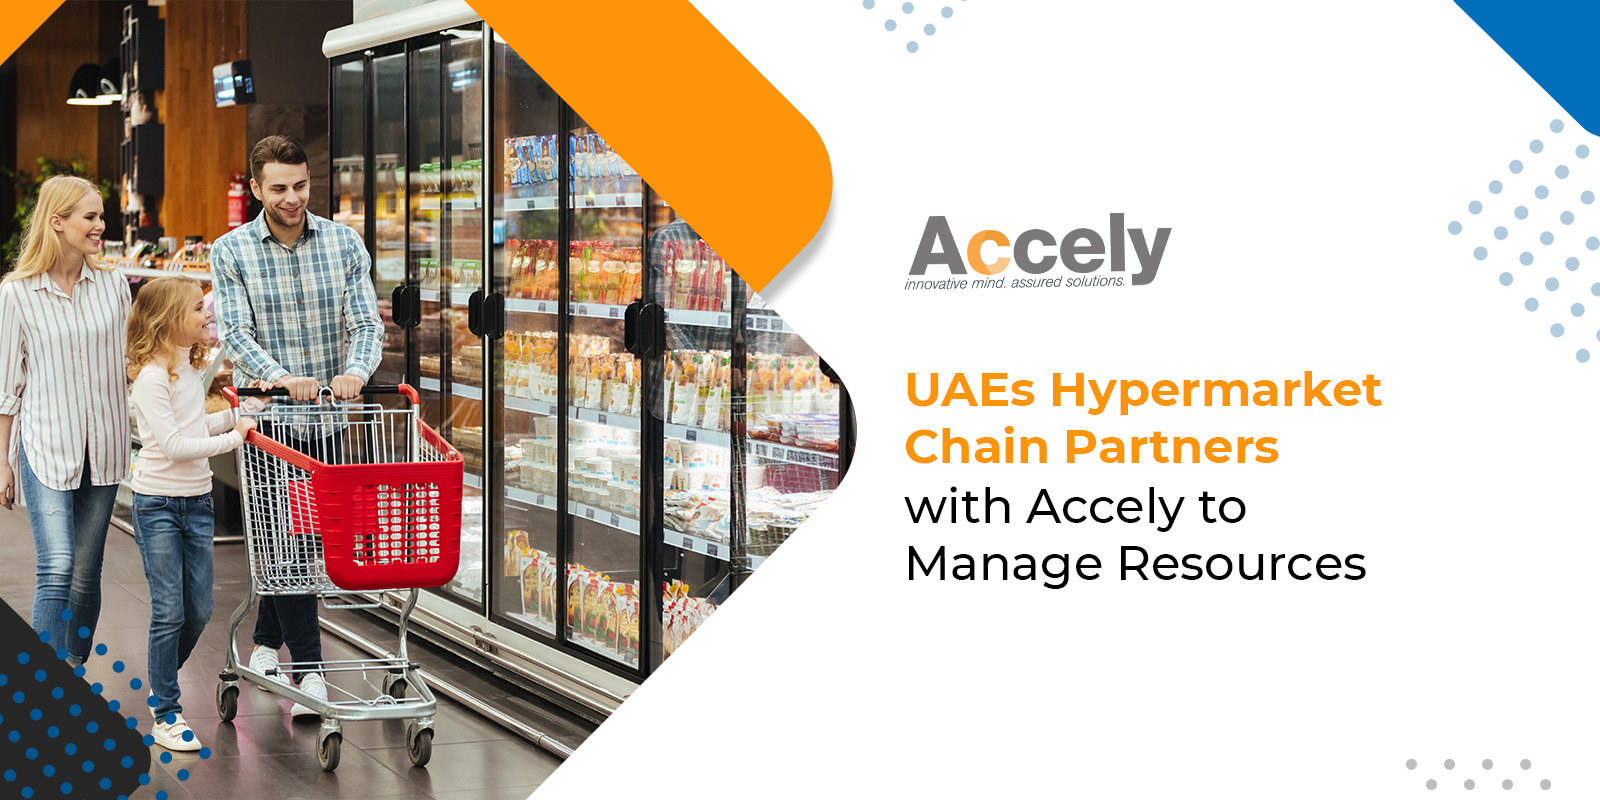 UAEs Hypermarket Chain Partners with Accely to Manage Resources